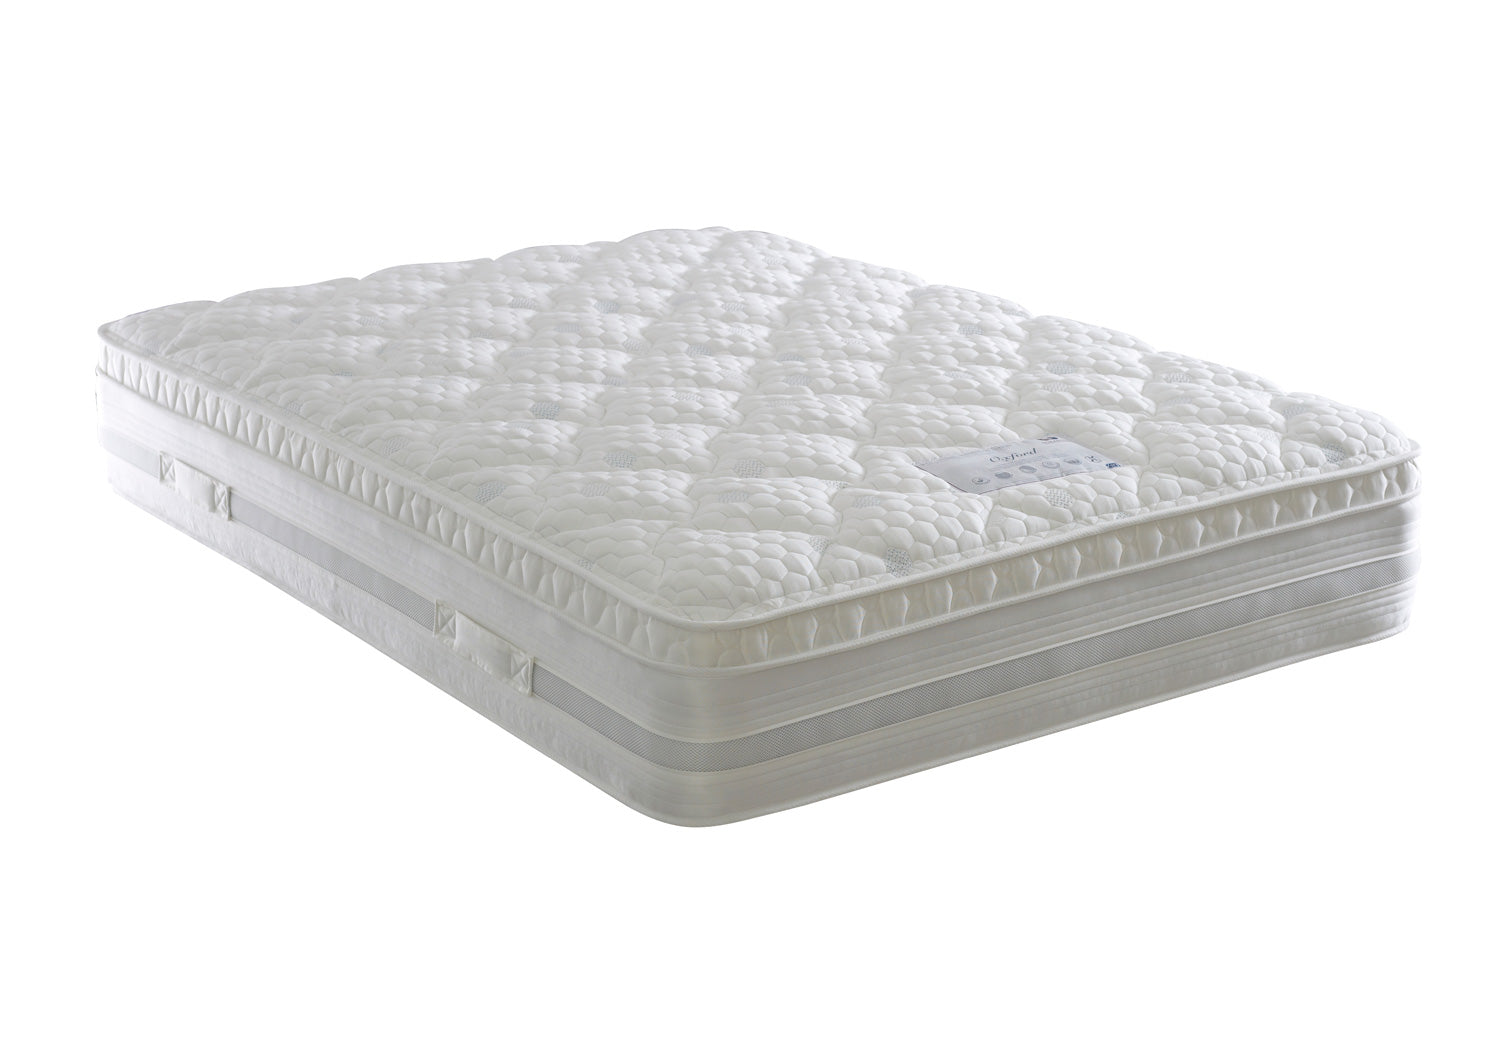 Oxford 1000 Pocket Sprung And Memory Foam Pillow Top Mattress (Medium firm)